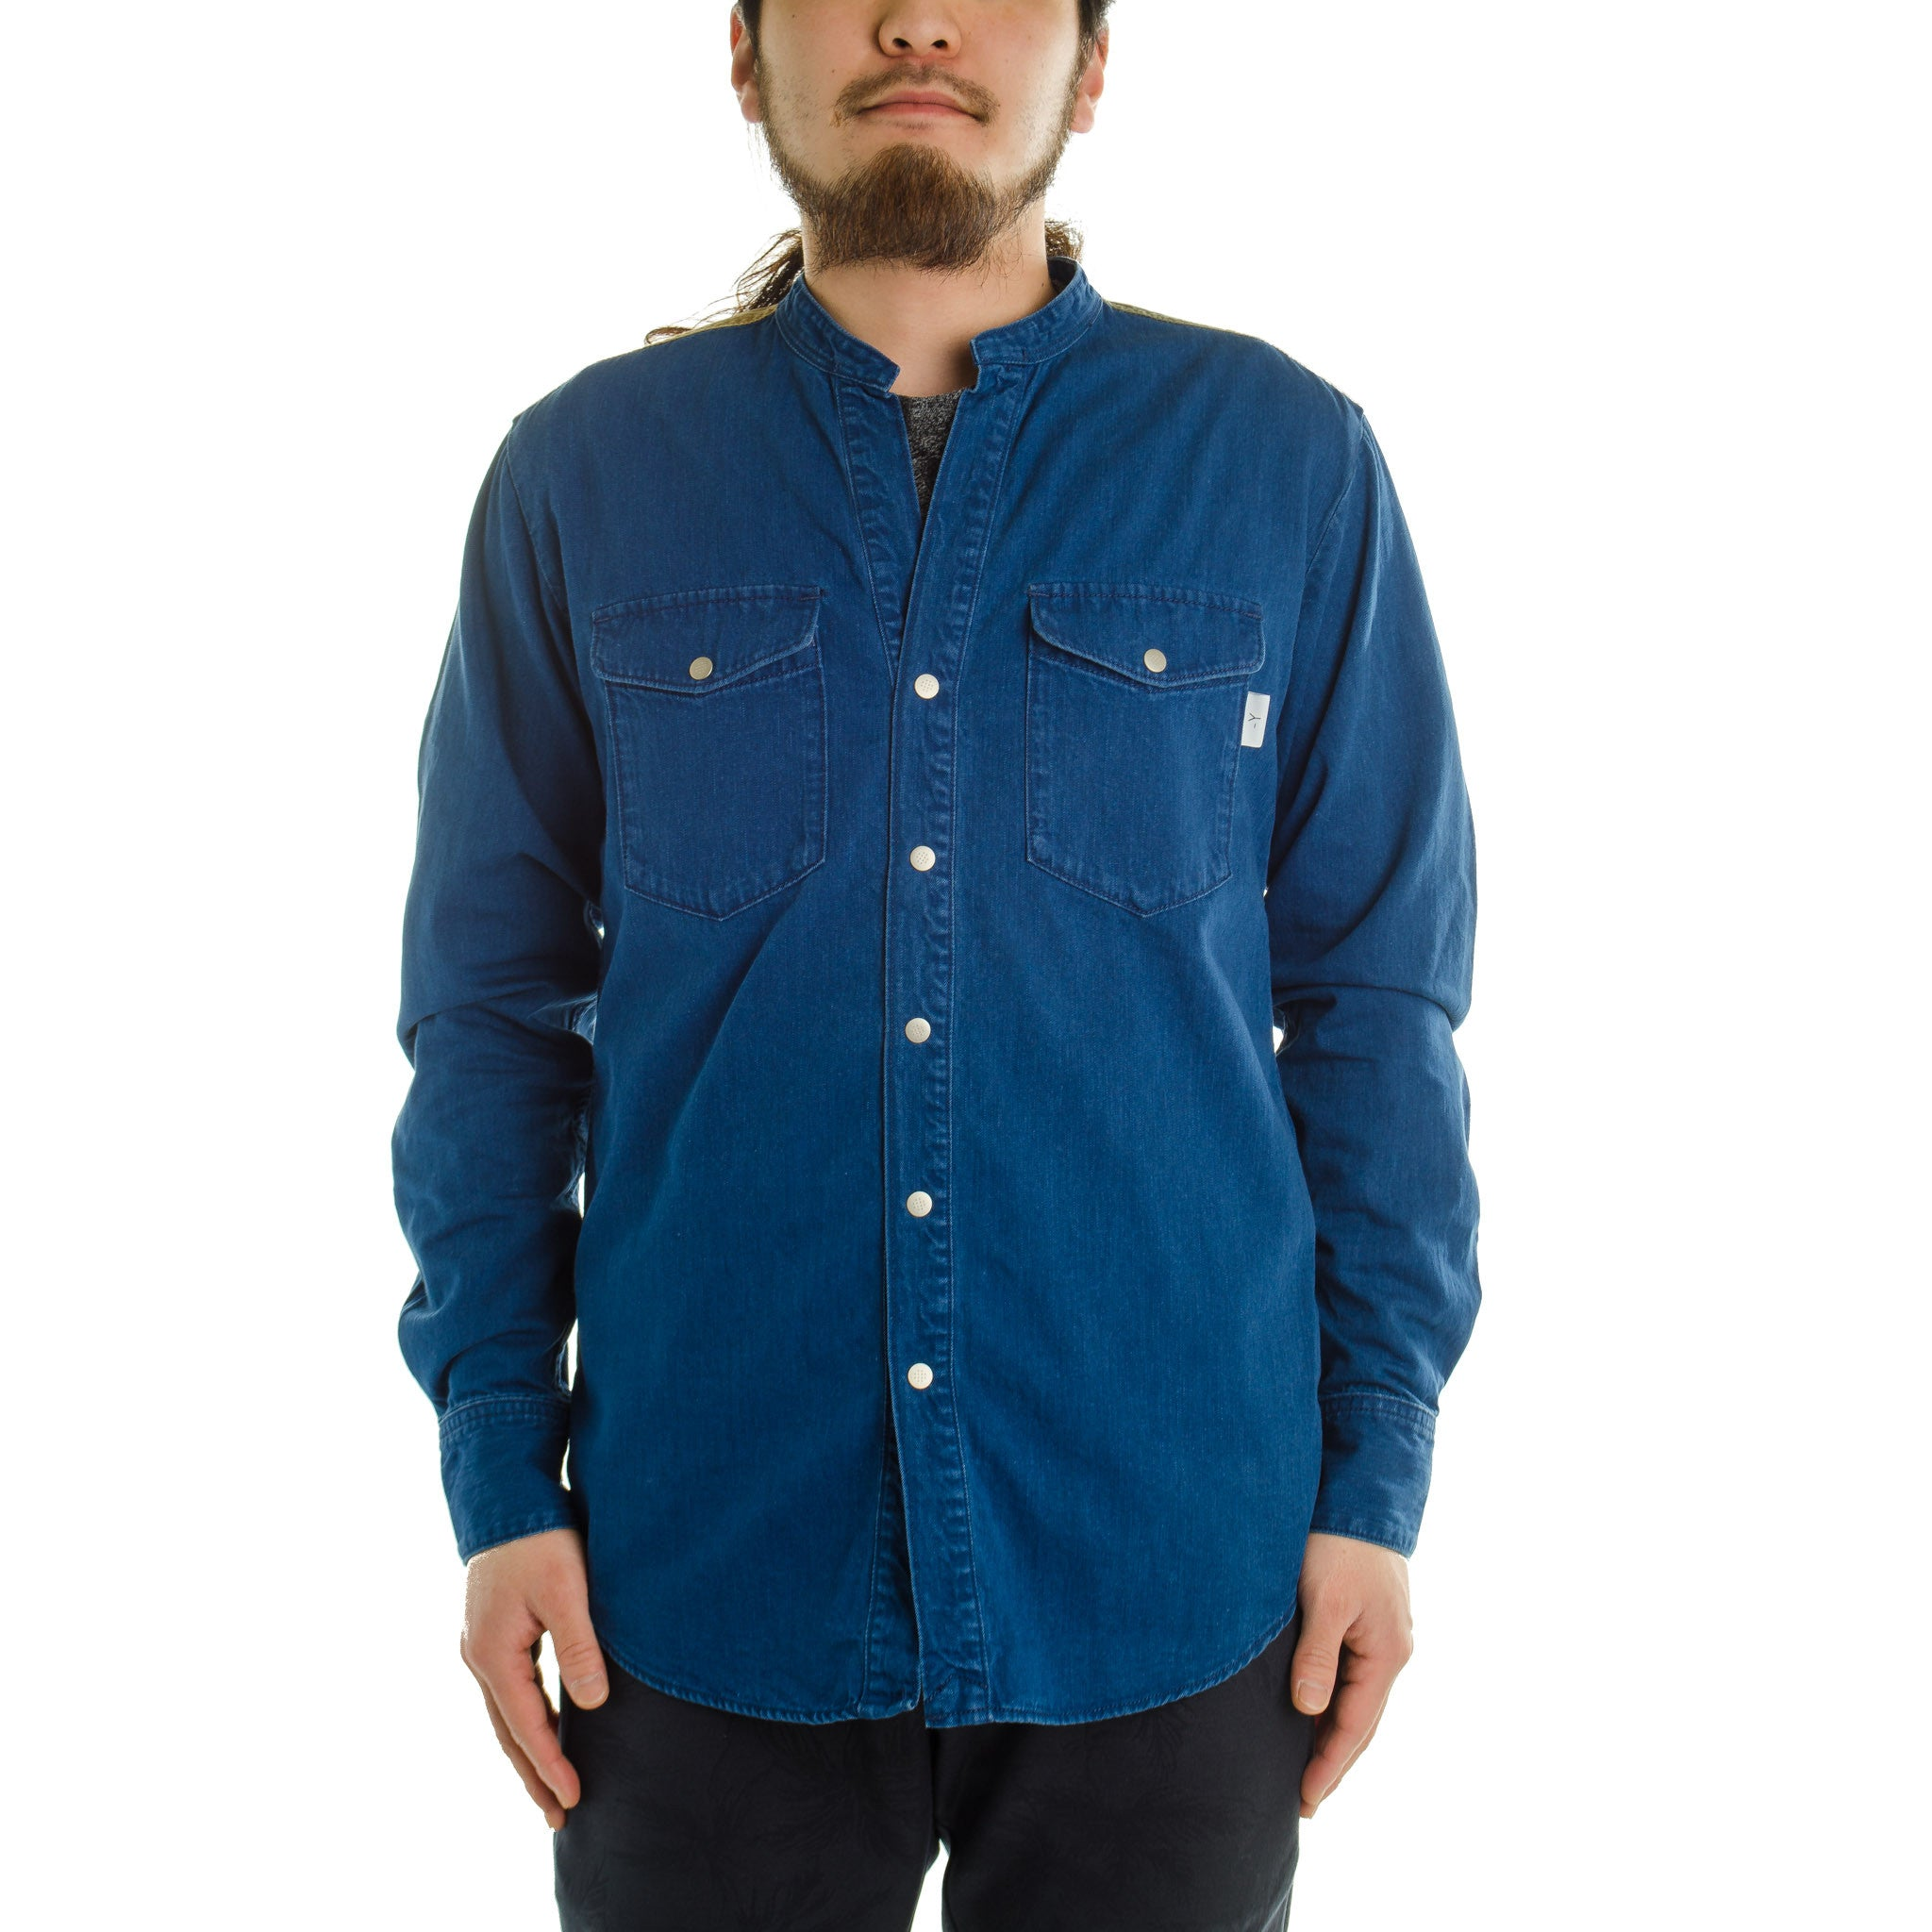 Band Collar Shirt Blue